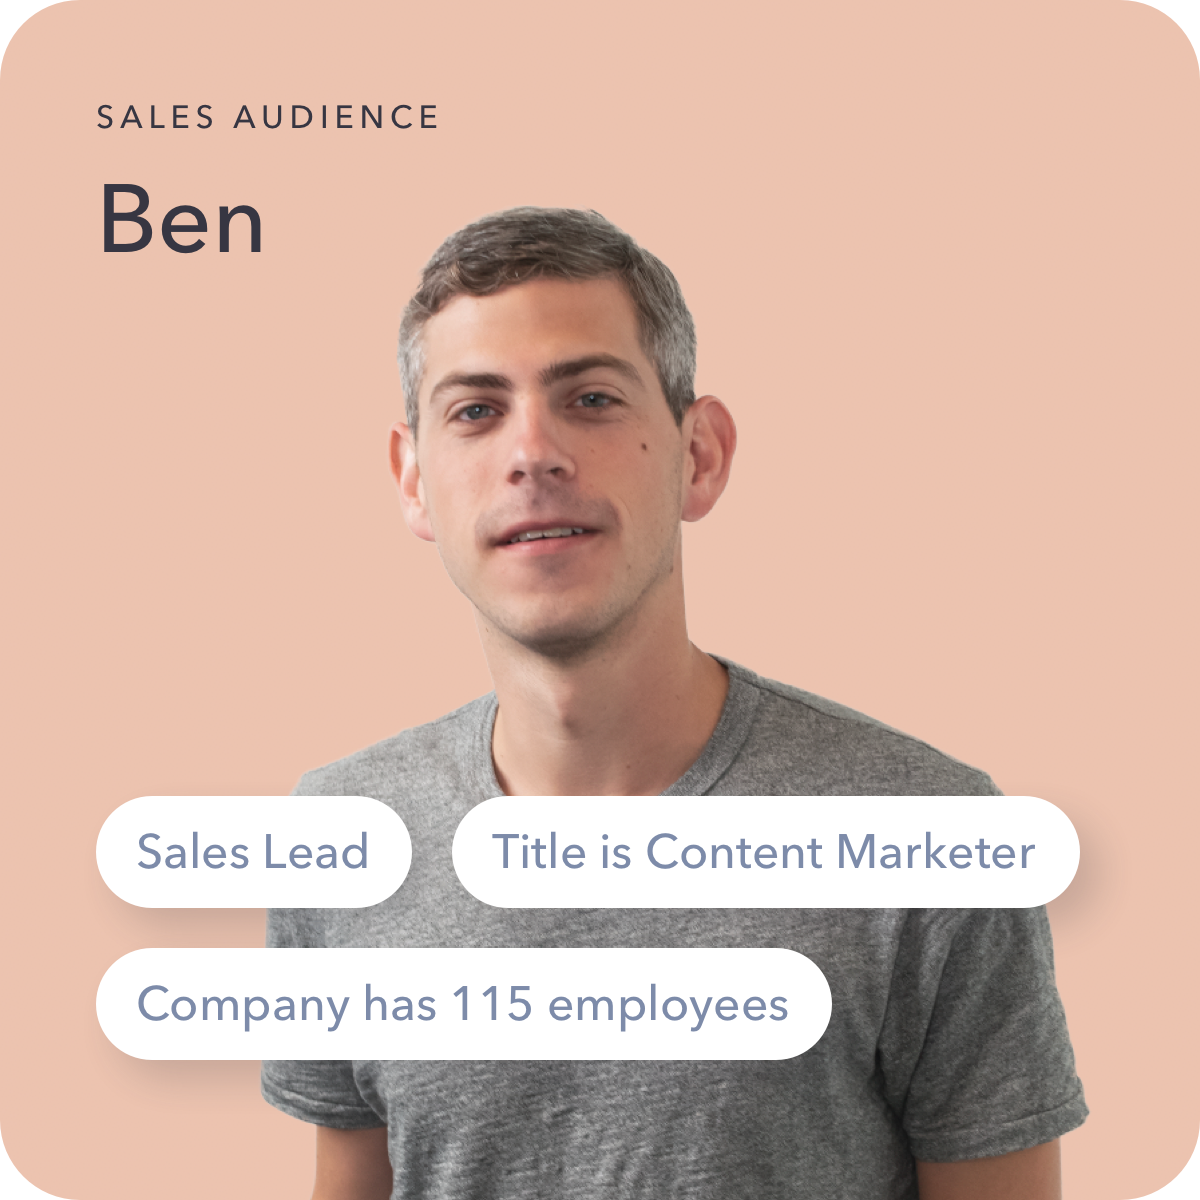 Ben the Marketer